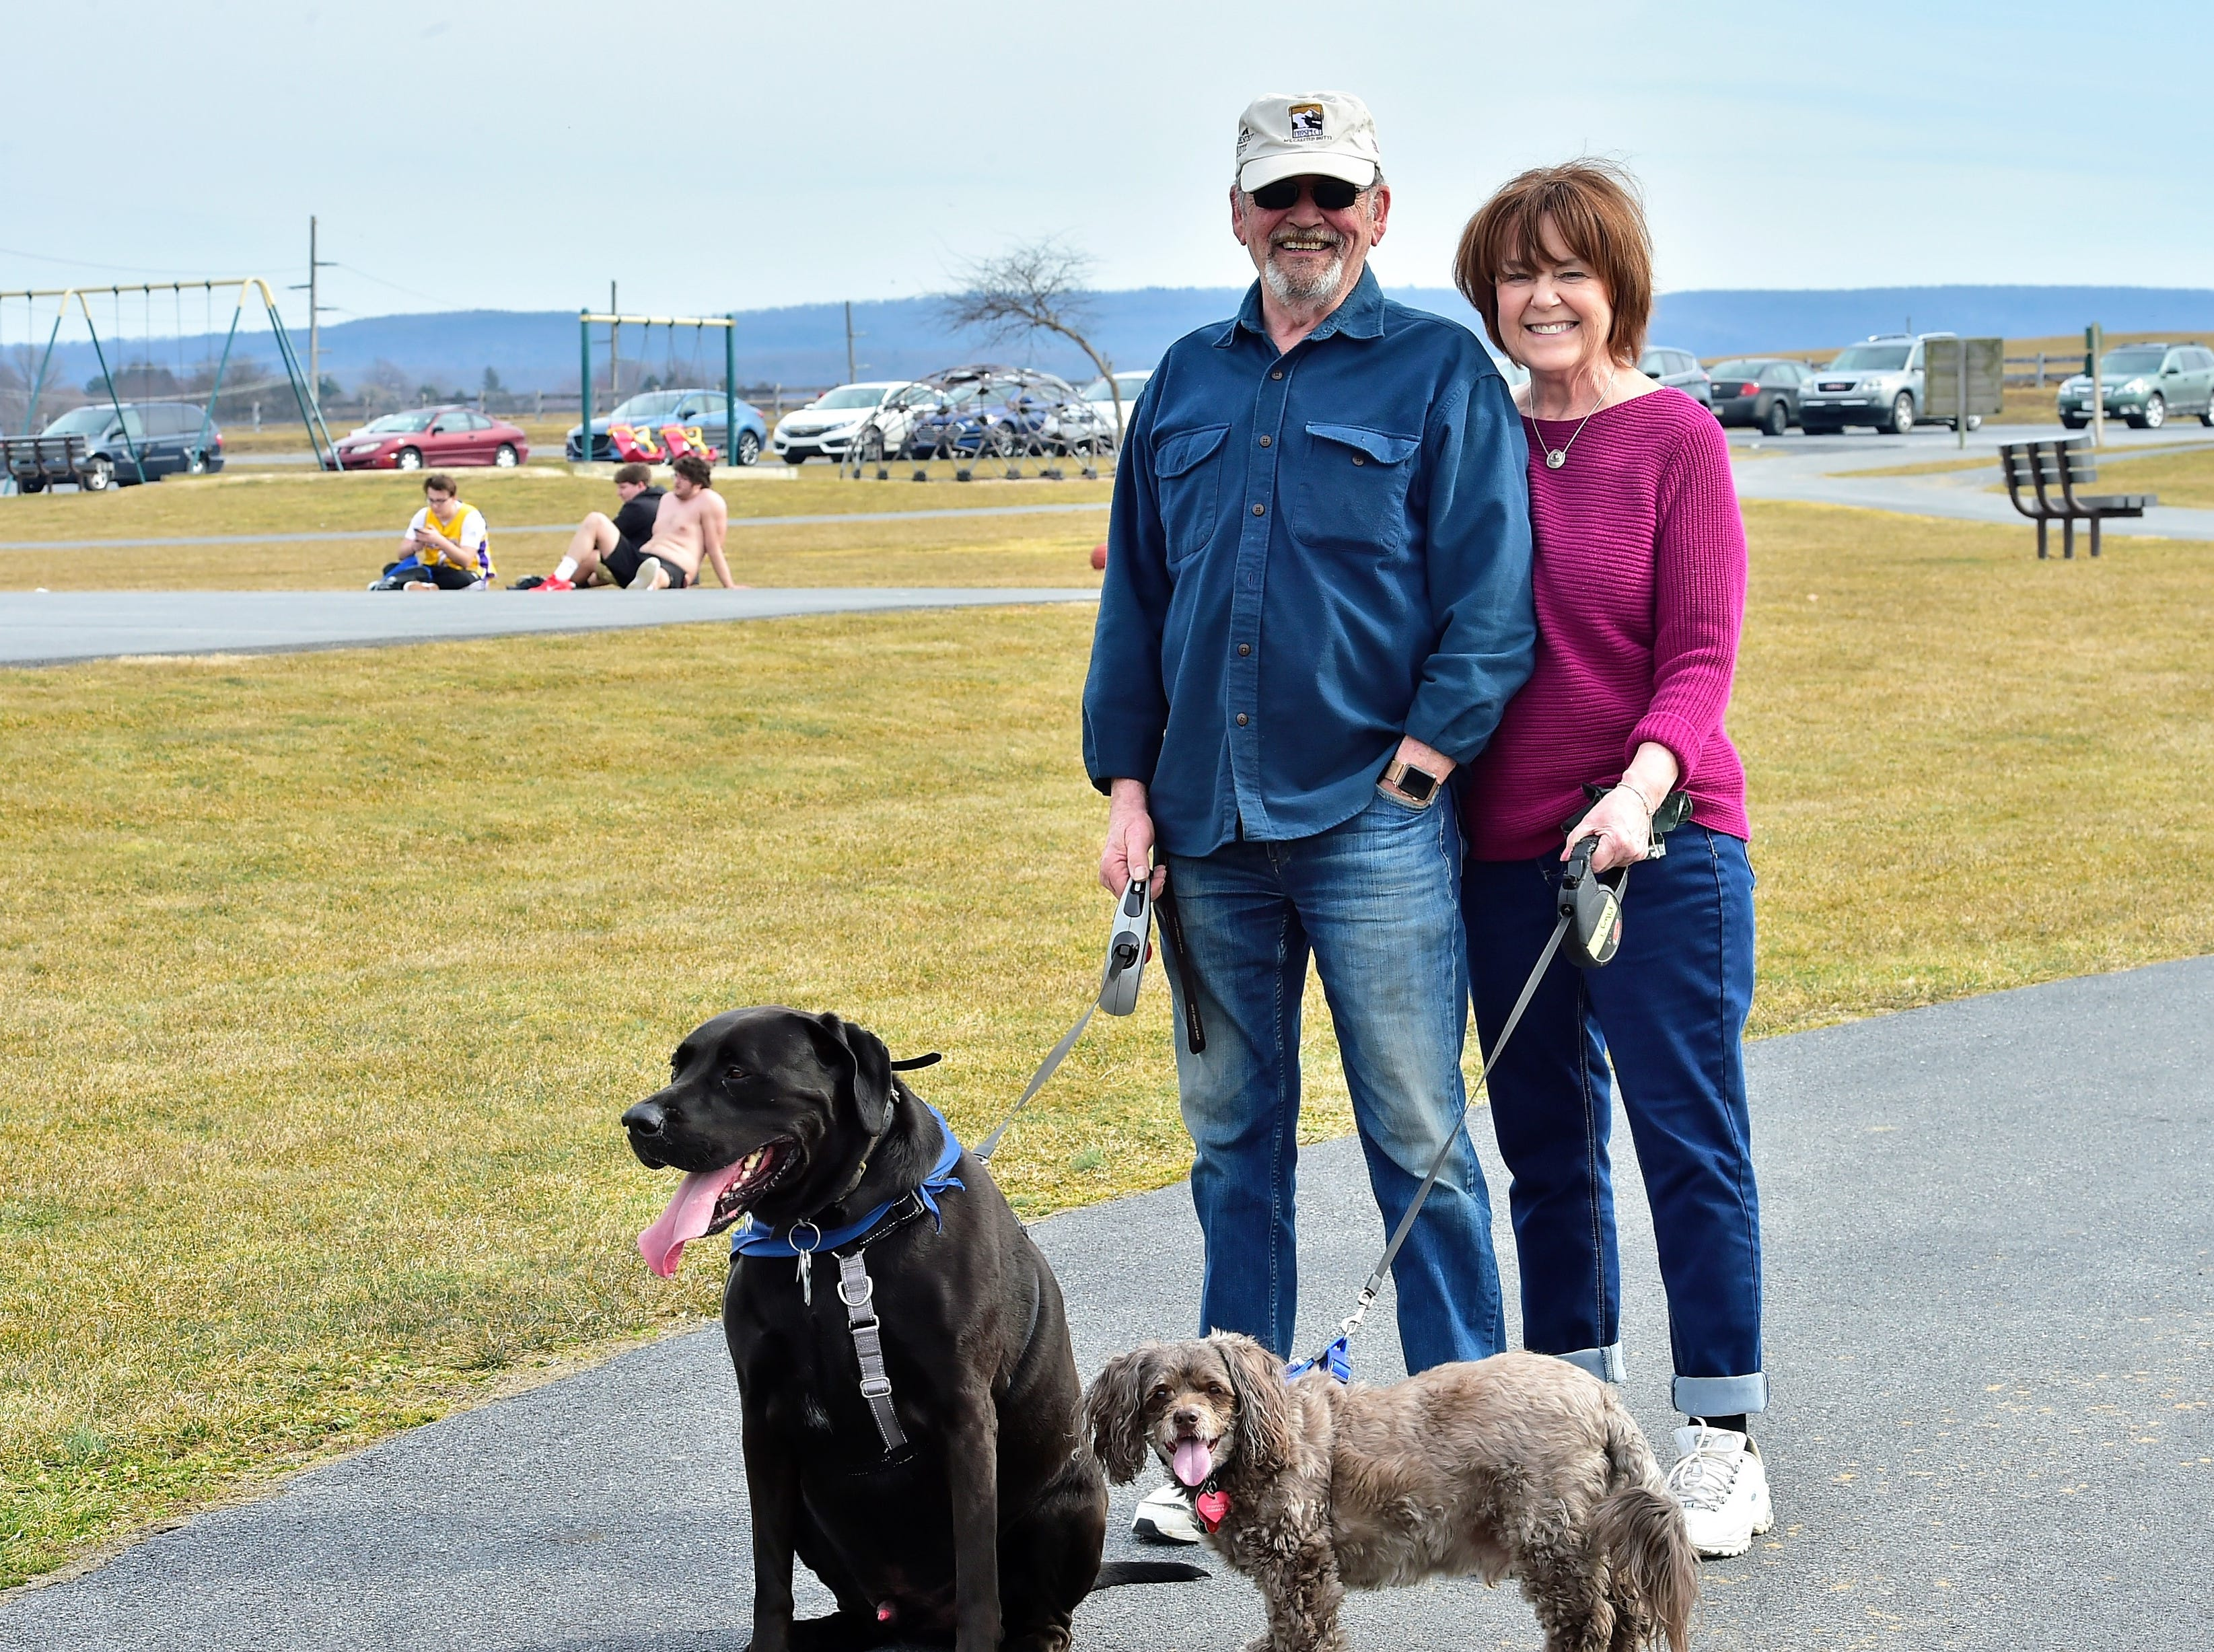 Ron Thompson, Fayetteville, and Maxine Porcelli, Chambersburg, walk their dogs on a warm Thursday afternoon, March 14, 2019, at Norlo Park in Fayetteville.